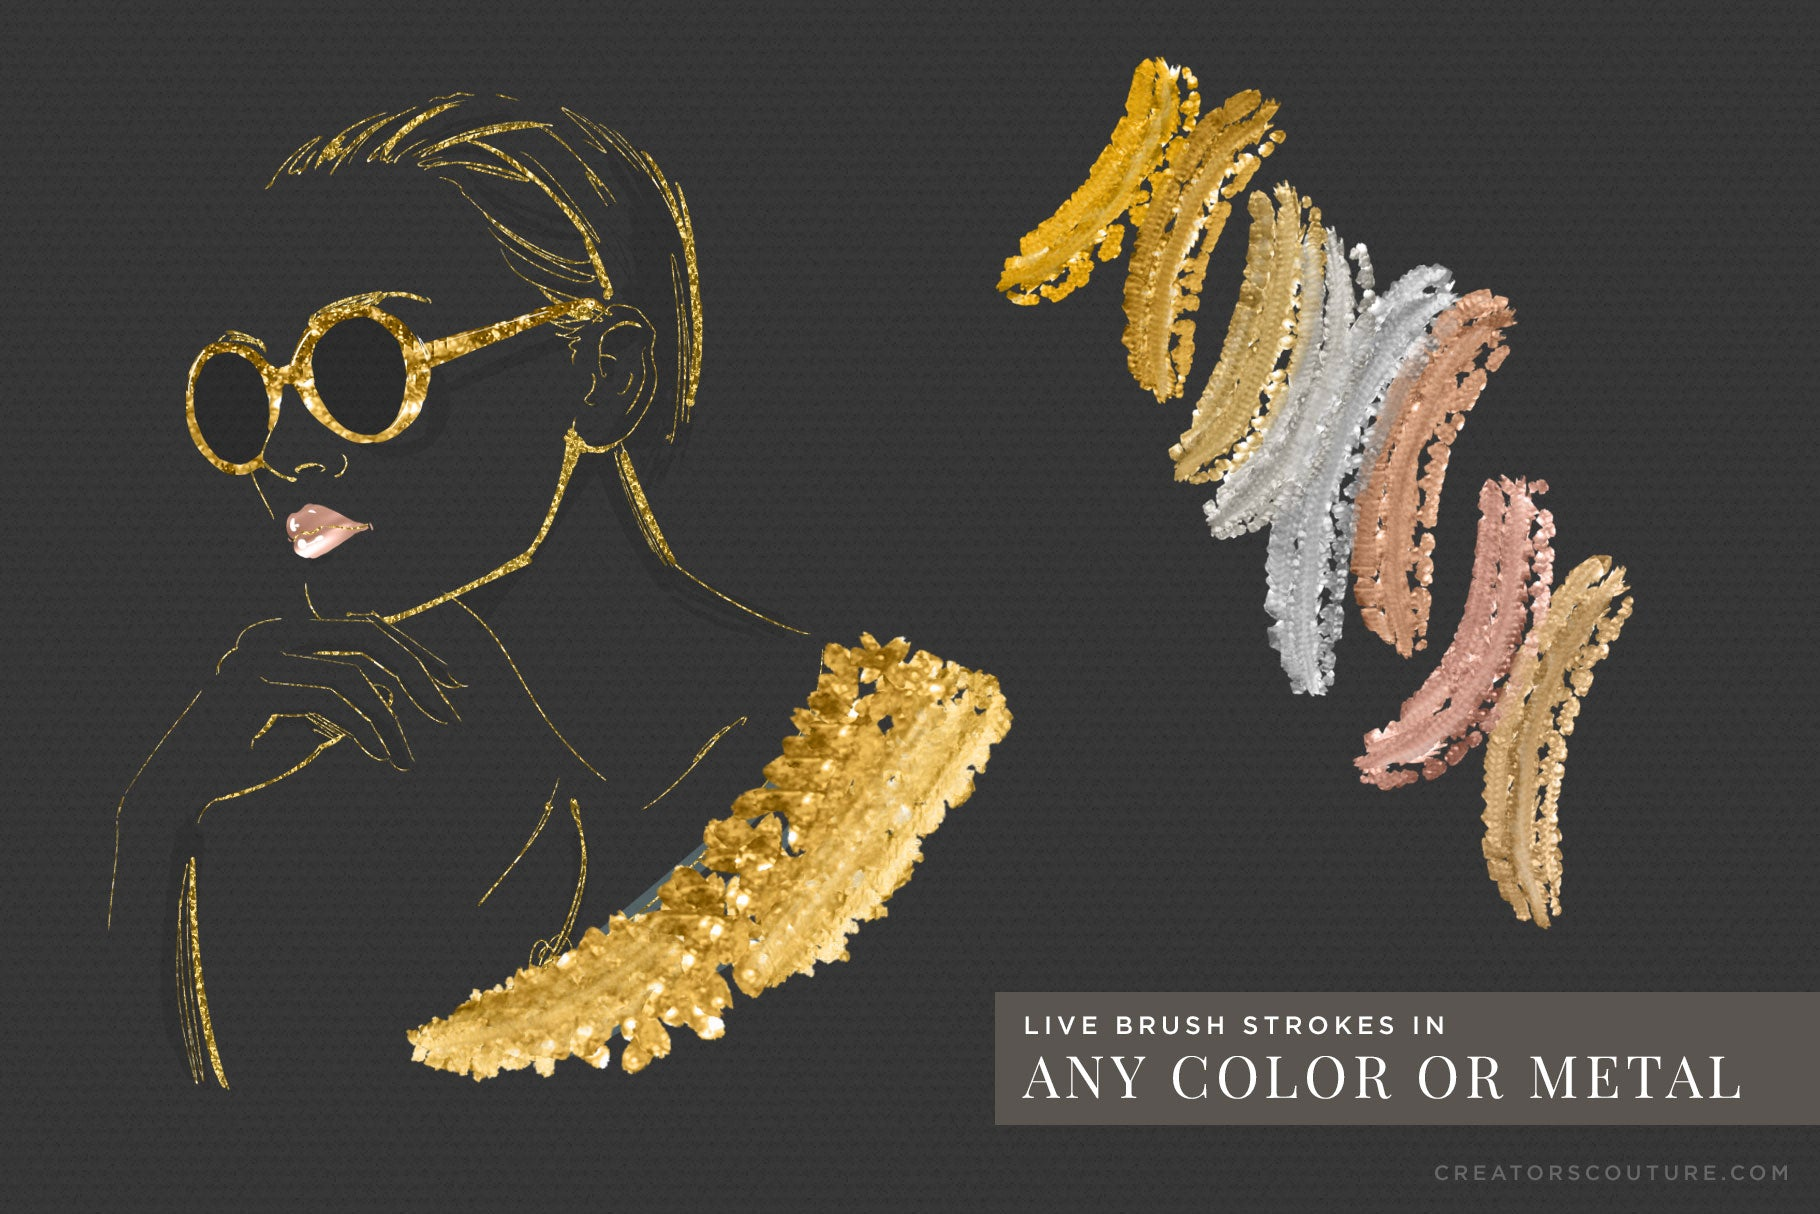 24k liquid, metallic gold photoshop brush previews - rose gold, copper, and silver demos